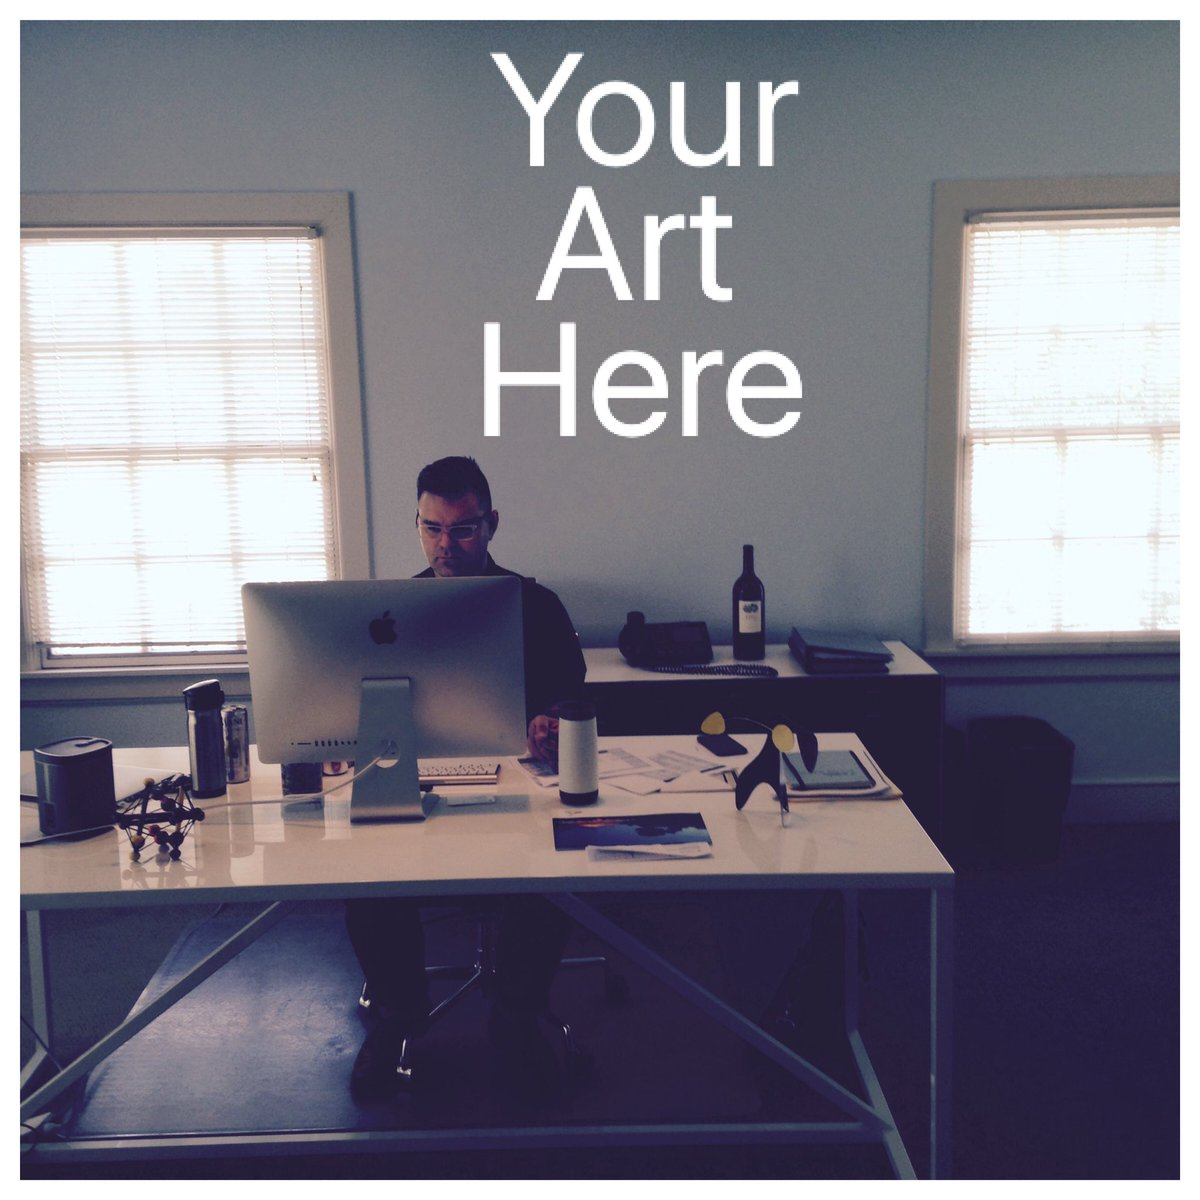 ATTN TULSA ARTISTS: Our new director wants to show your work in his office. Details here: https://t.co/gUTHtdrKXo https://t.co/sXelSy6tvV